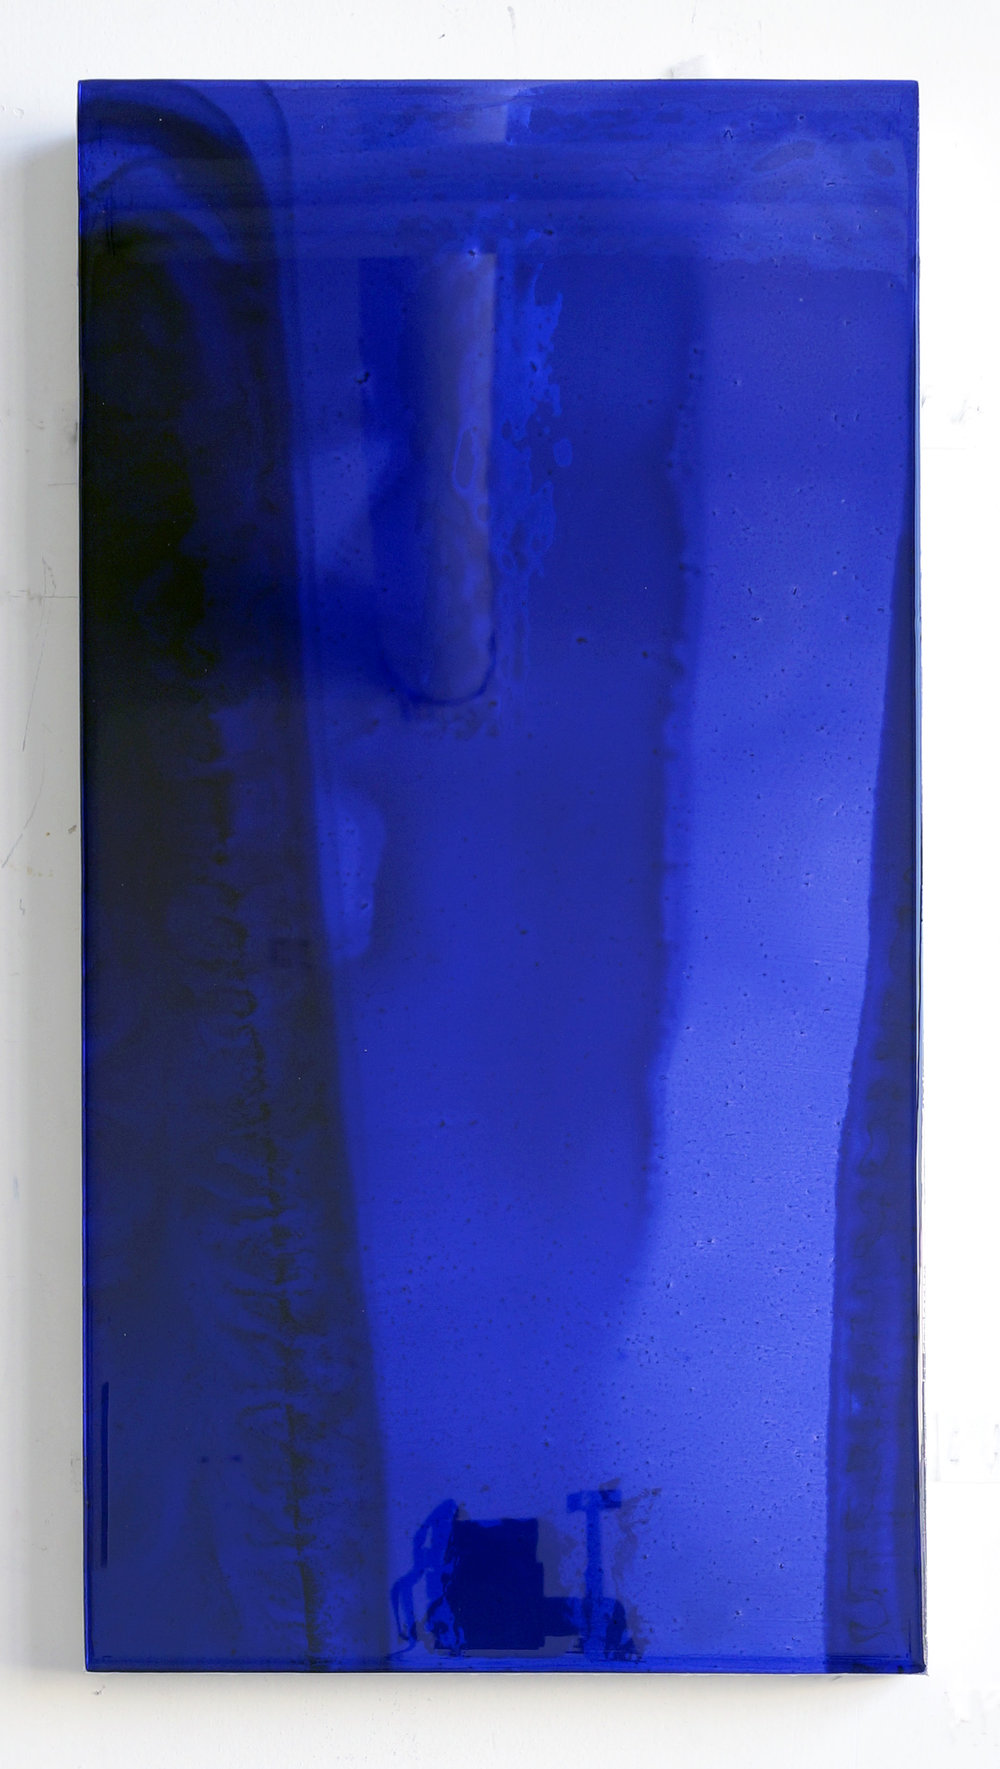 19 by 10 (deep blue), 2017